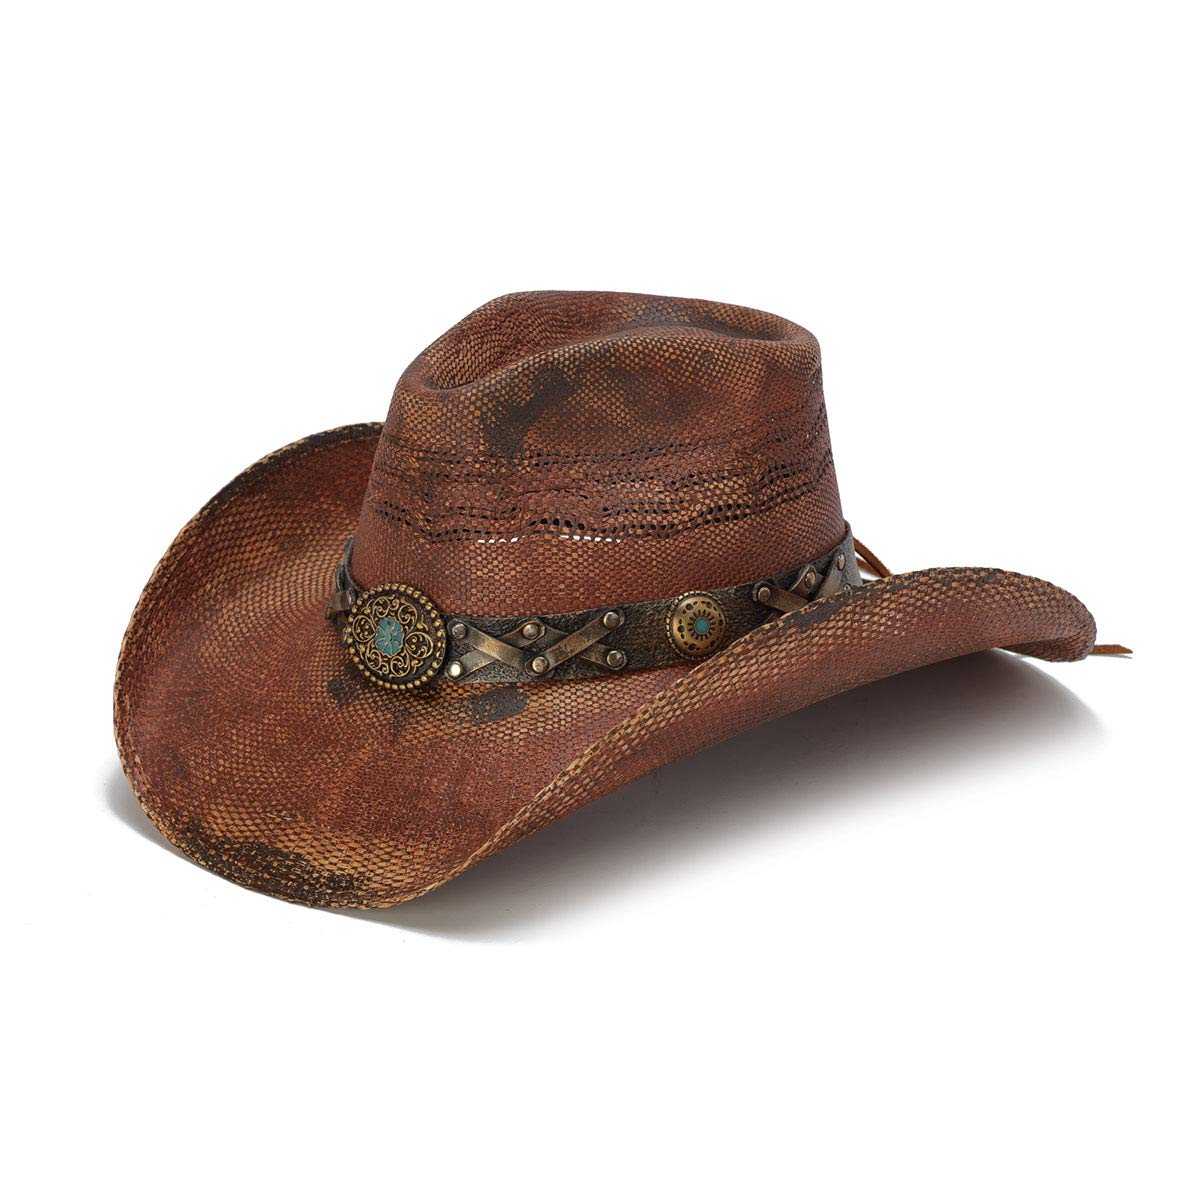 Stampede Hats Women's Cowgirl Drim Rustic Cowboy Hat with Turquoise Stone M Red by Stampede Hats